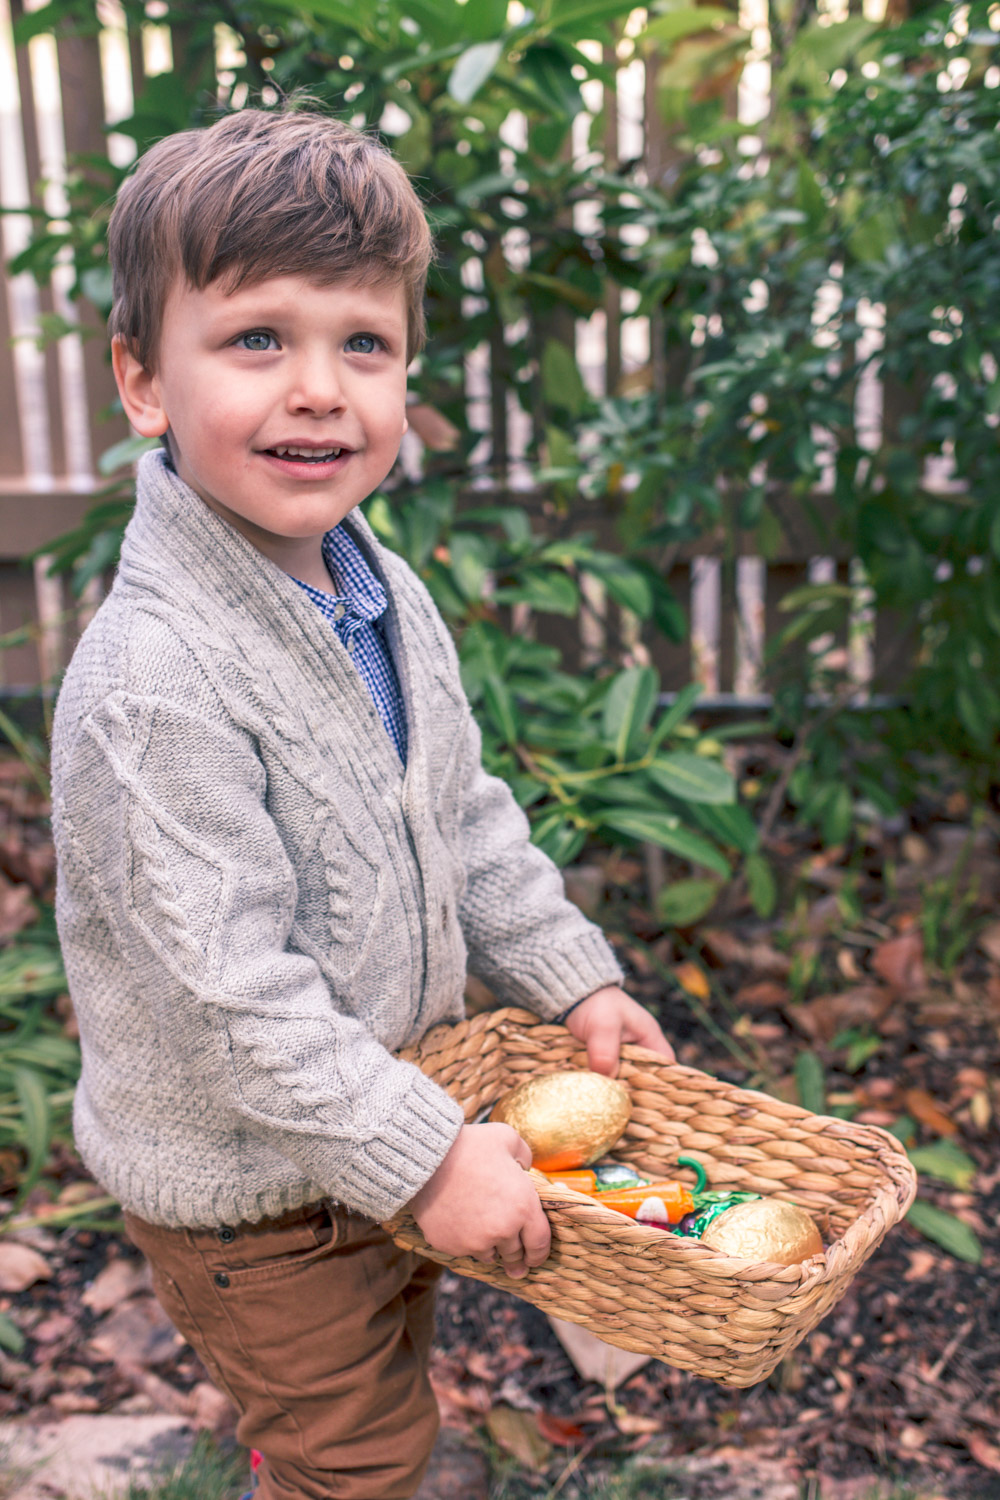 Toddler wearing Janie and Jack Knit Cardigan at Autumn Easter Egg Hunt holding a basket of chocolate eggs and carrots